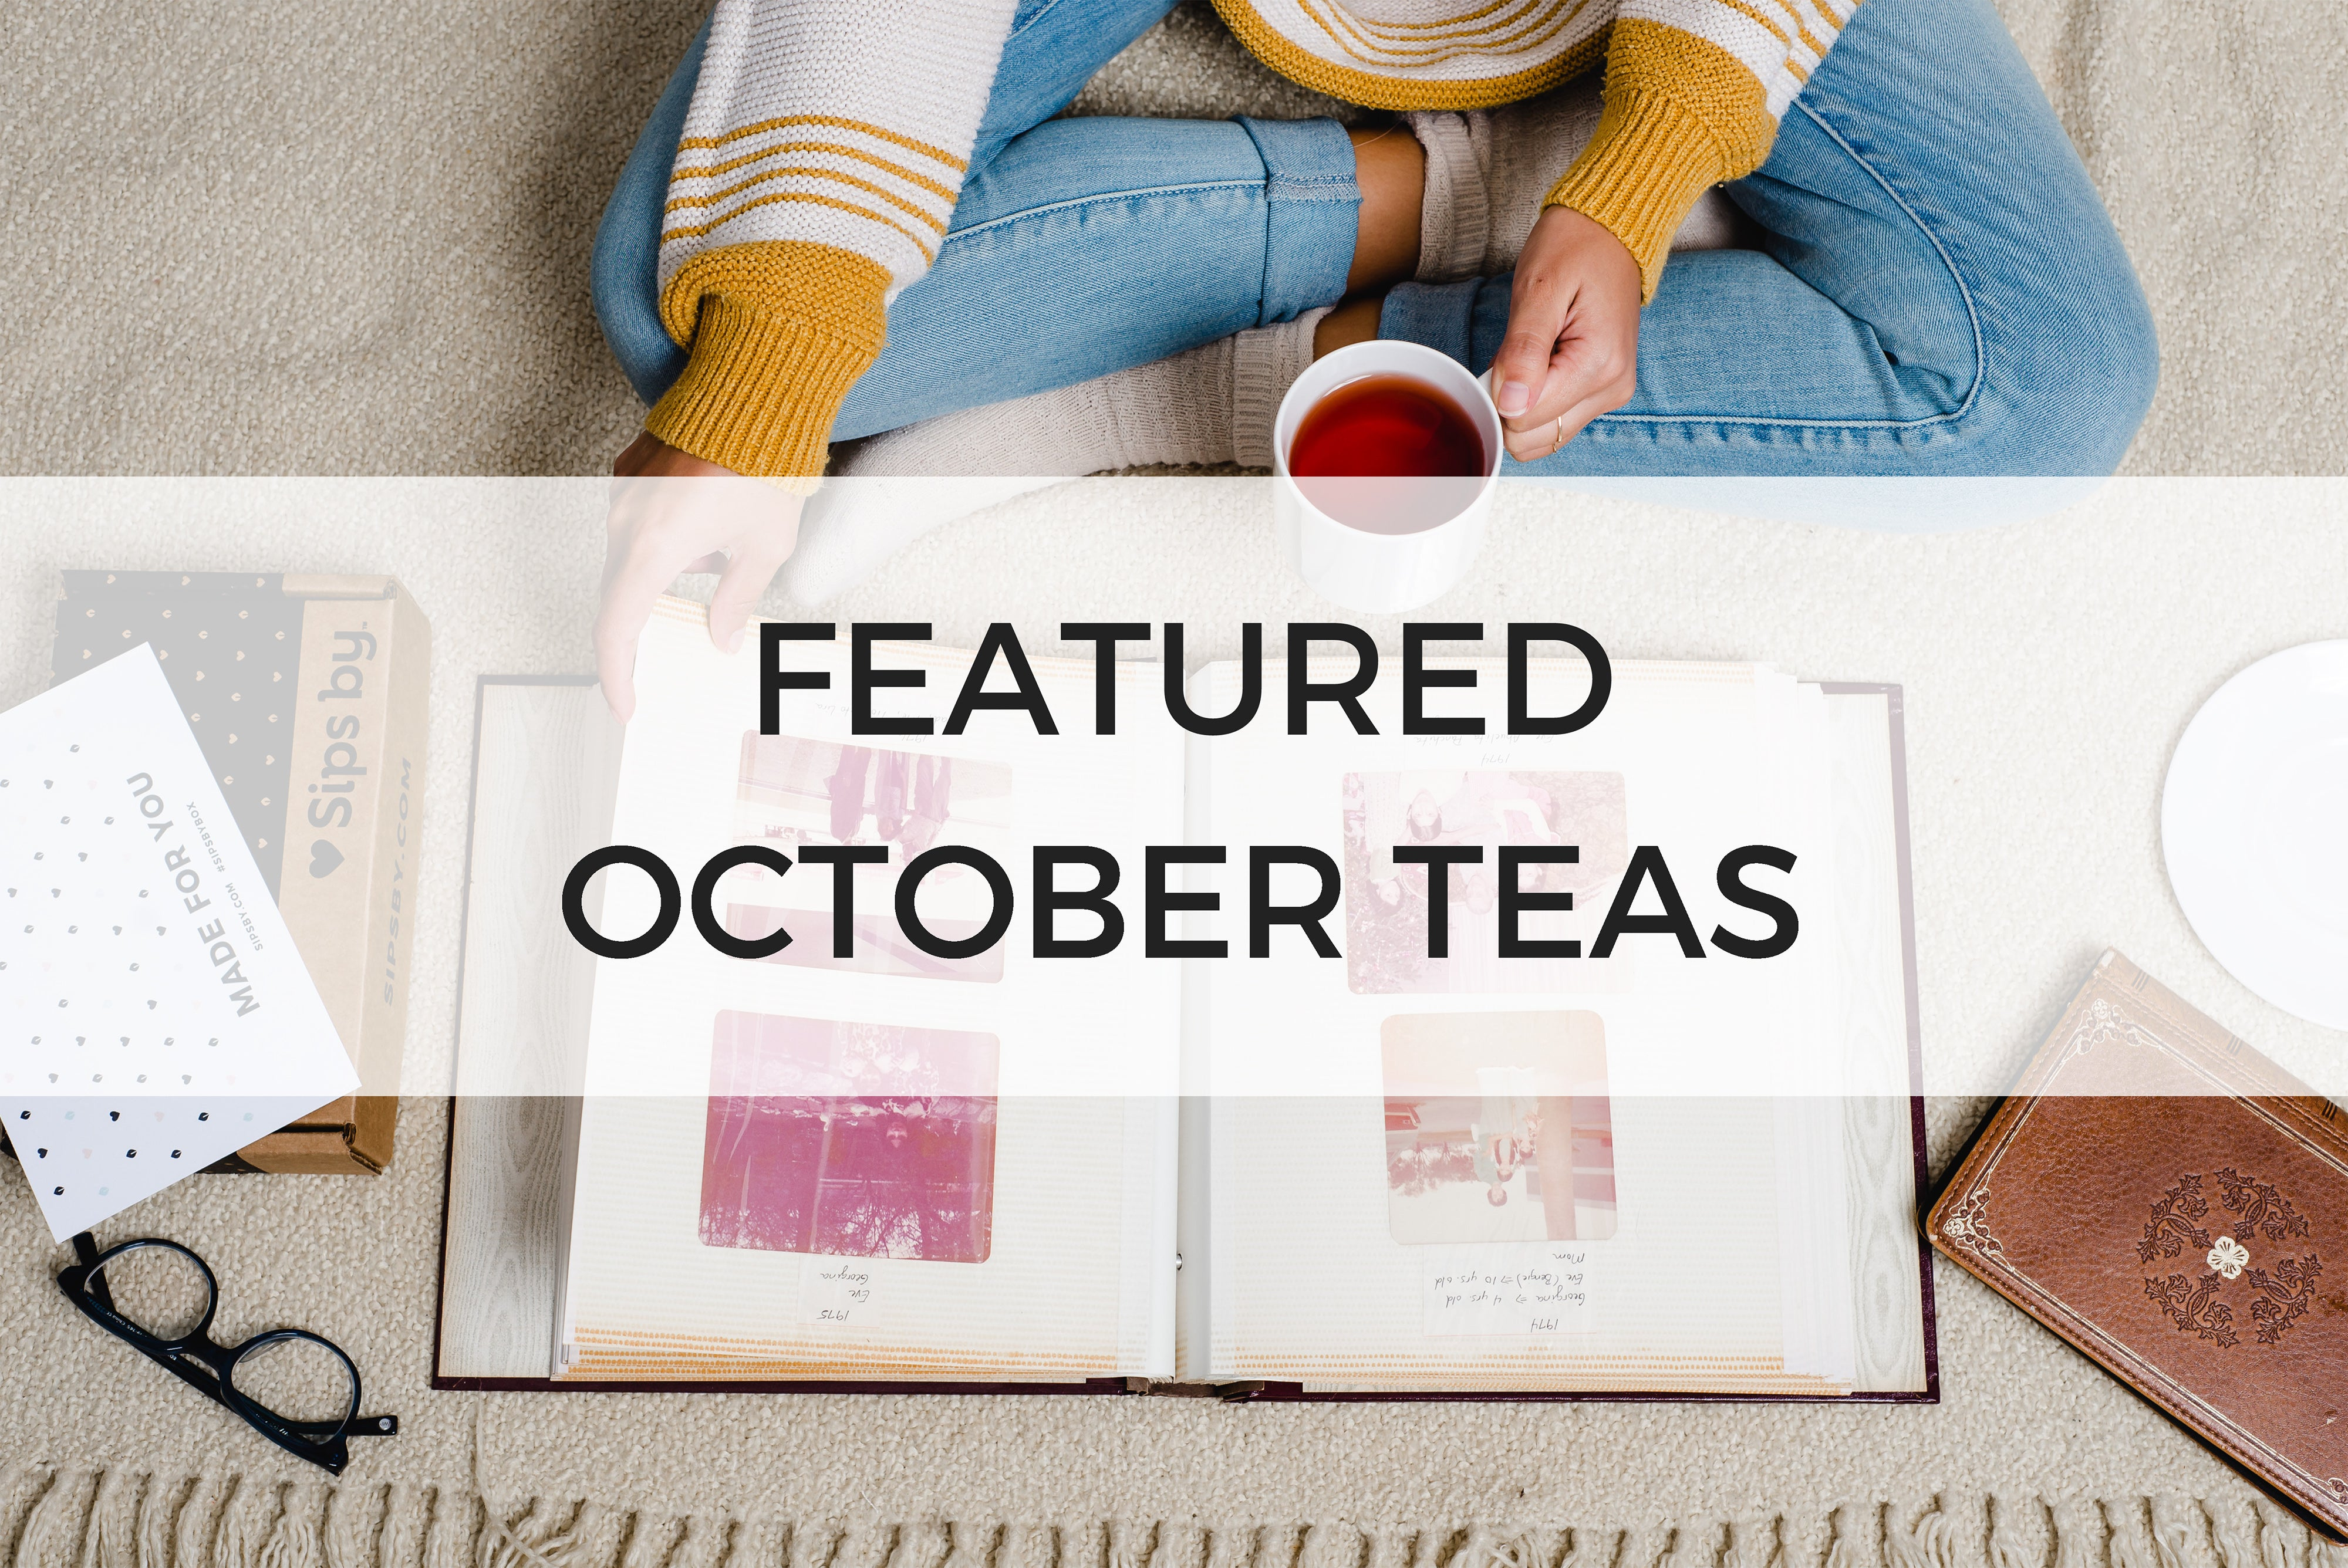 FEATURED OCTOBER TEAS